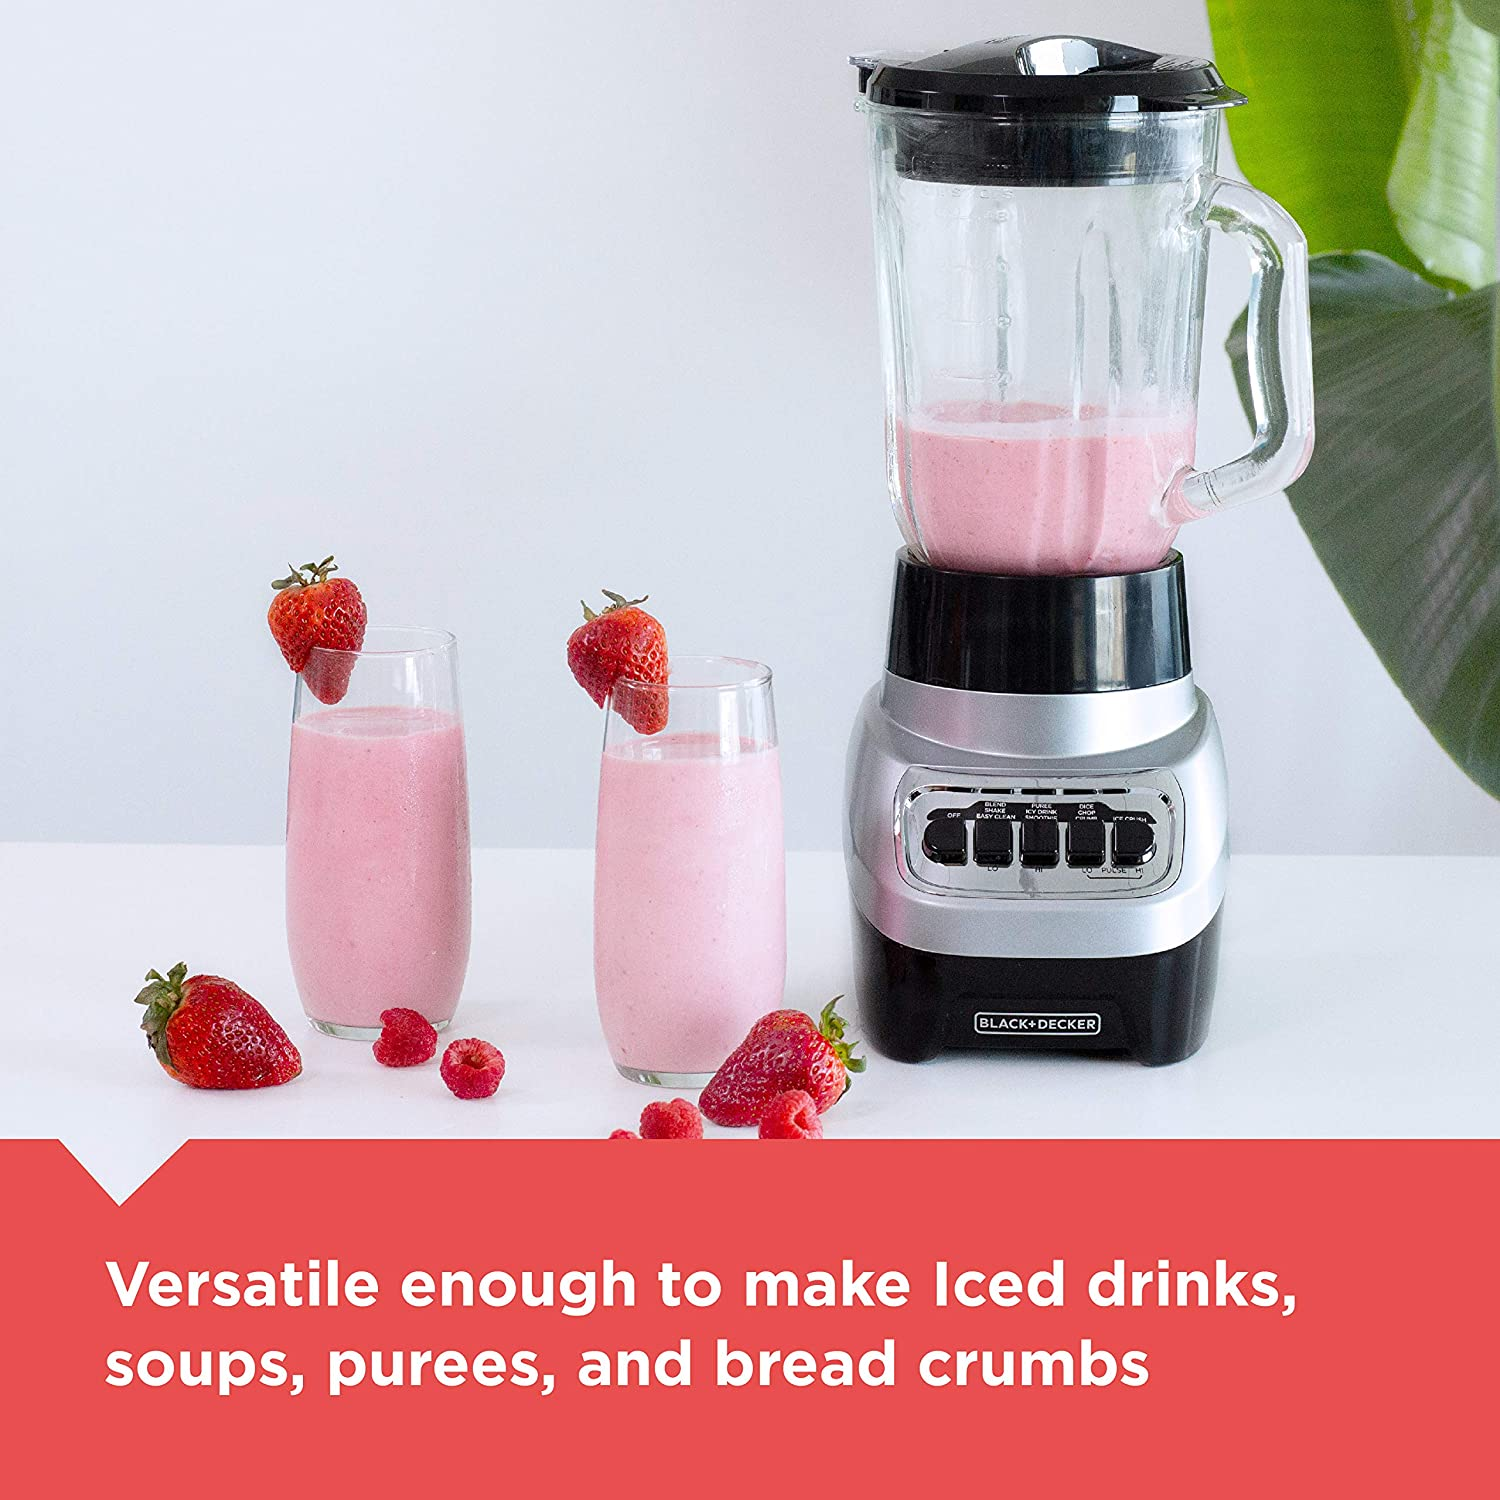 BLACK+DECKER Power Crush Multi-Function Blender with 6-Cup Glass Jar, 4 Speed Settings, Silver